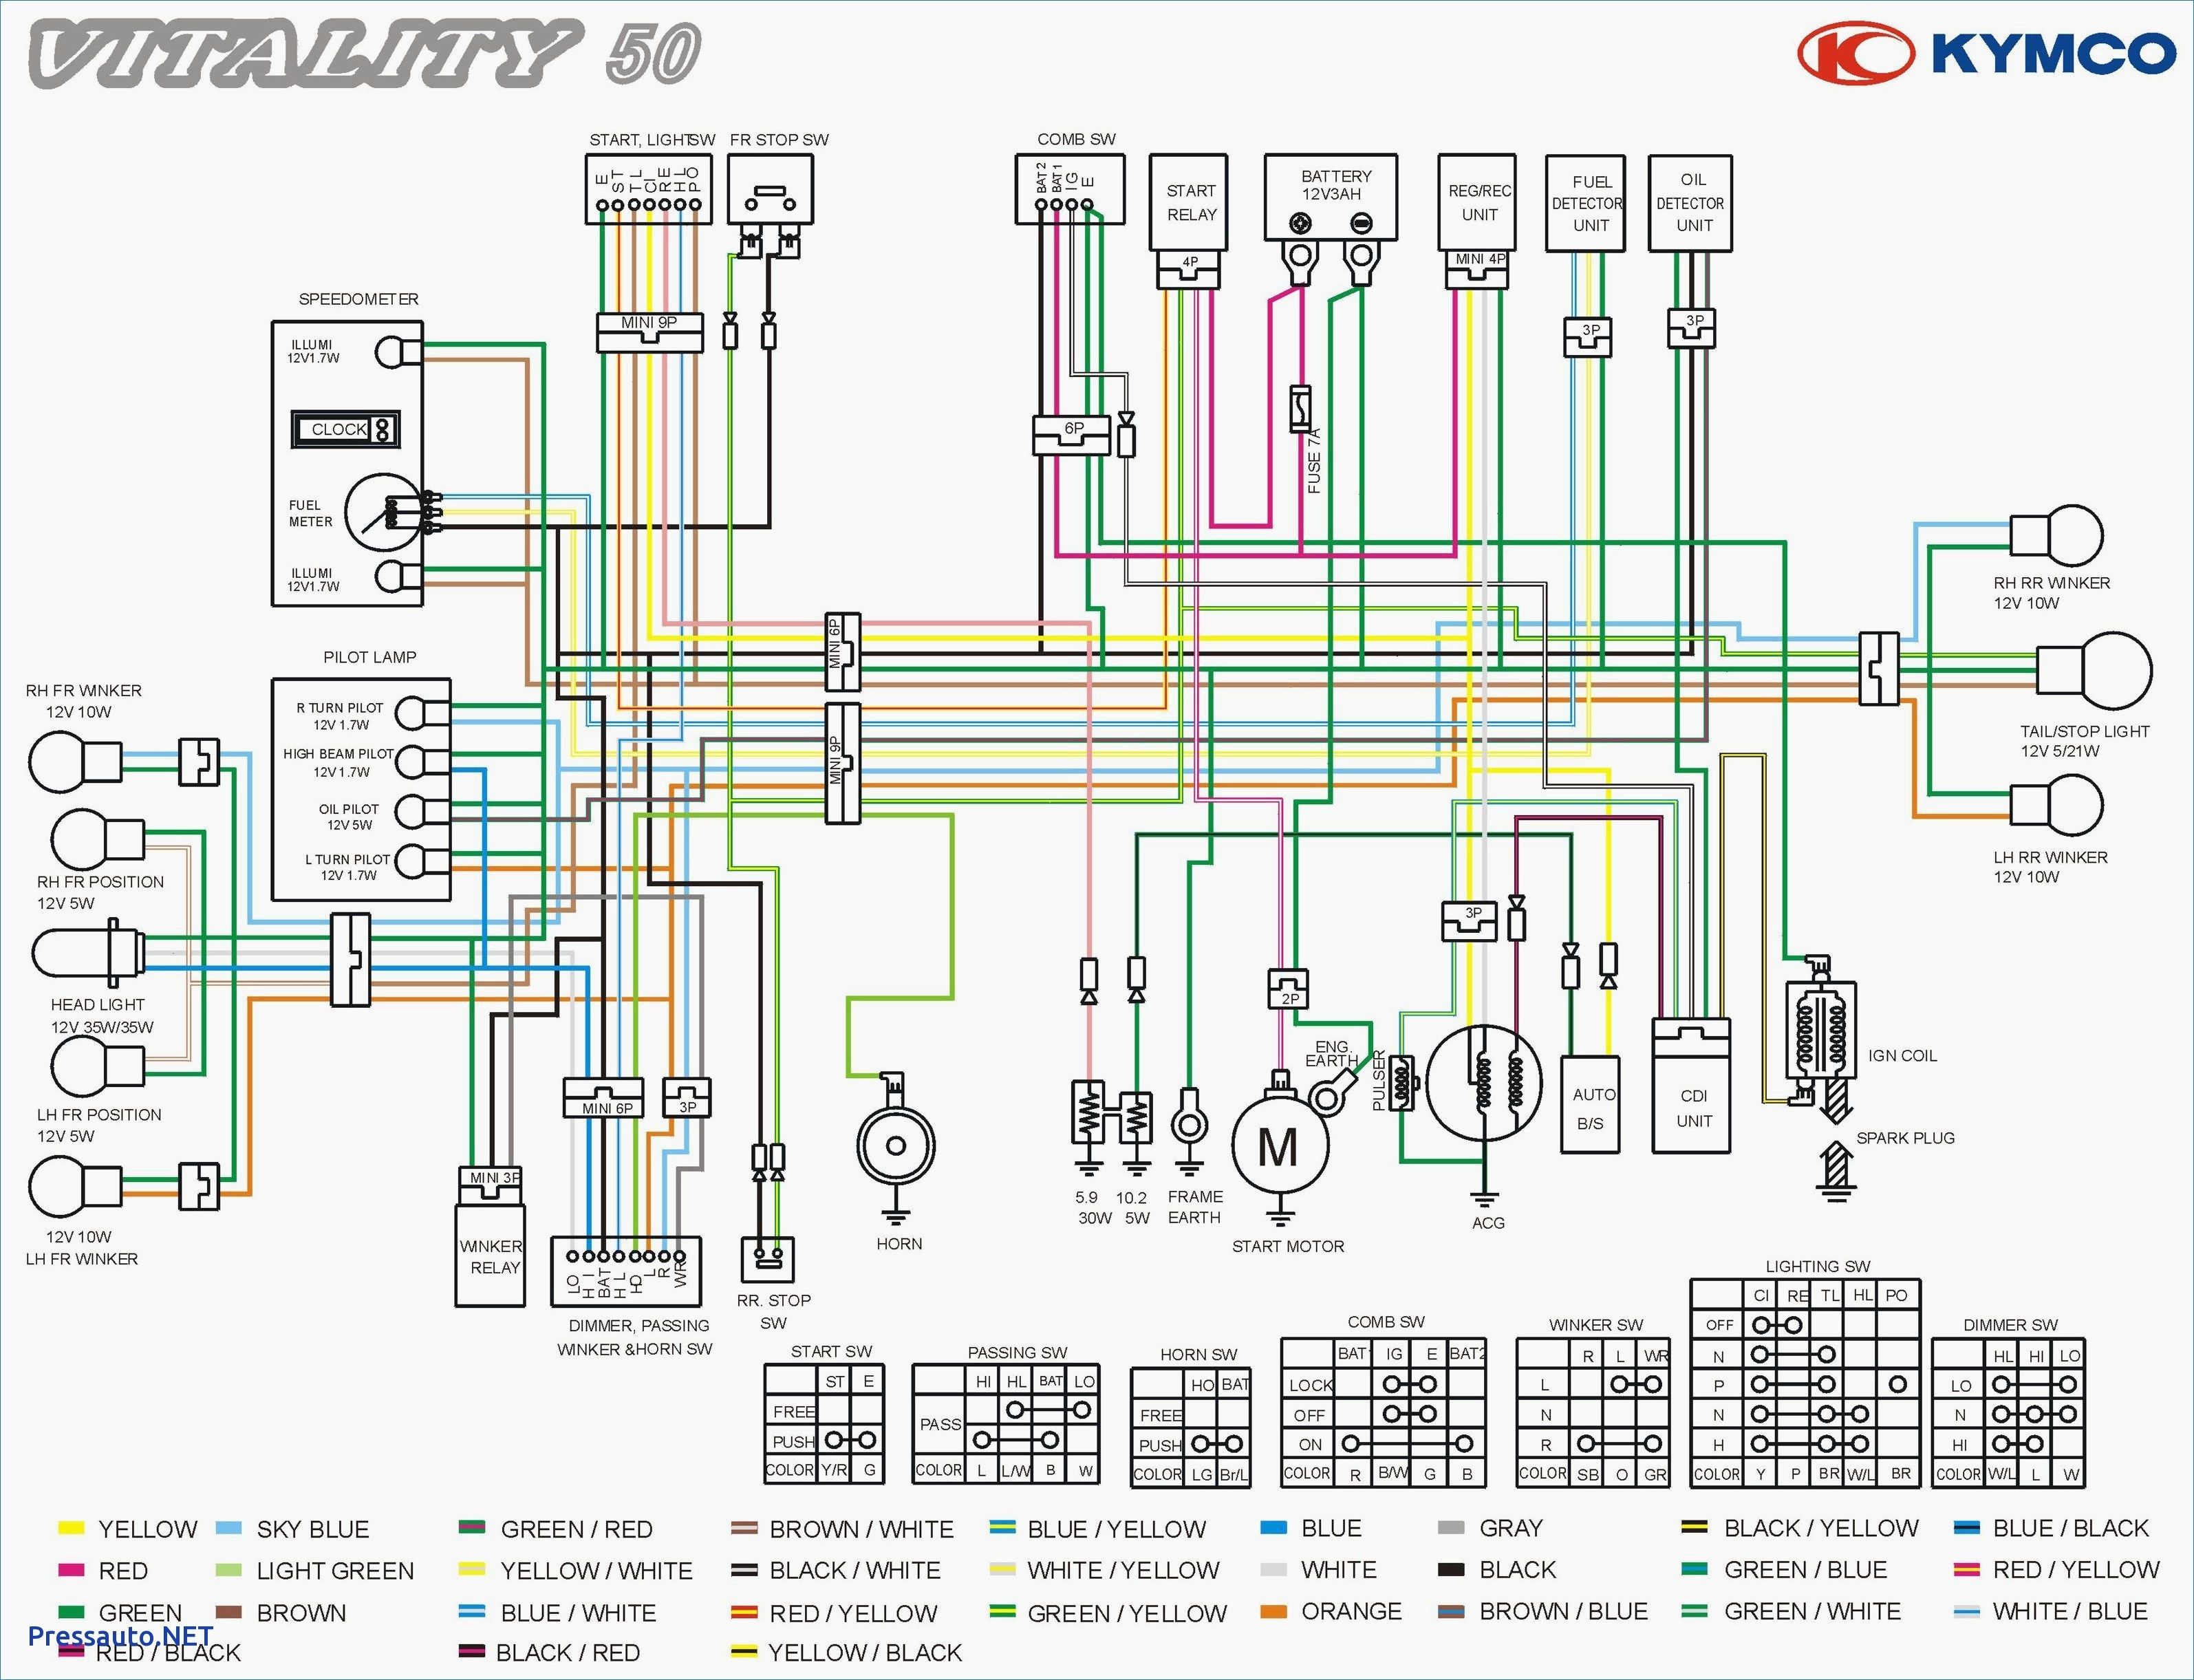 kymco 4 wheeler wiring diagram all wiring diagram Mongoose Four Wheeler